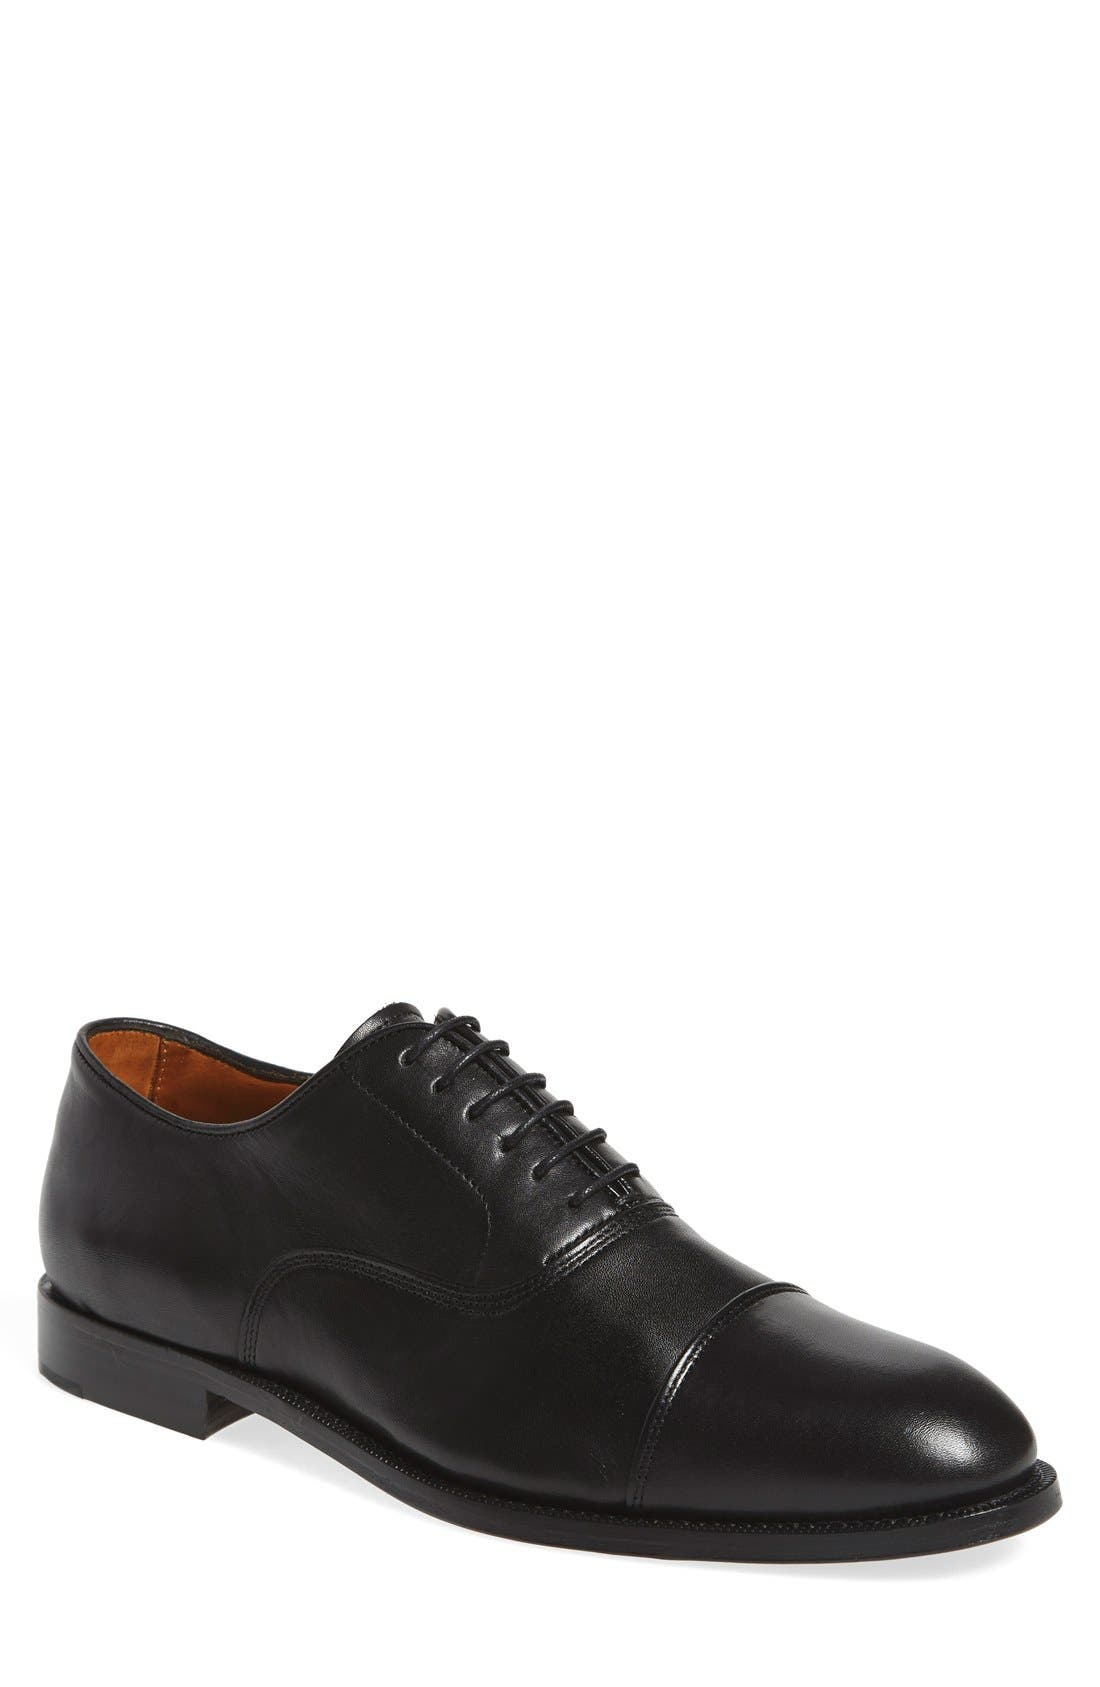 VINCE CAMUTO, 'Eeric' Cap Toe Oxford, Main thumbnail 1, color, BLACK LEATHER